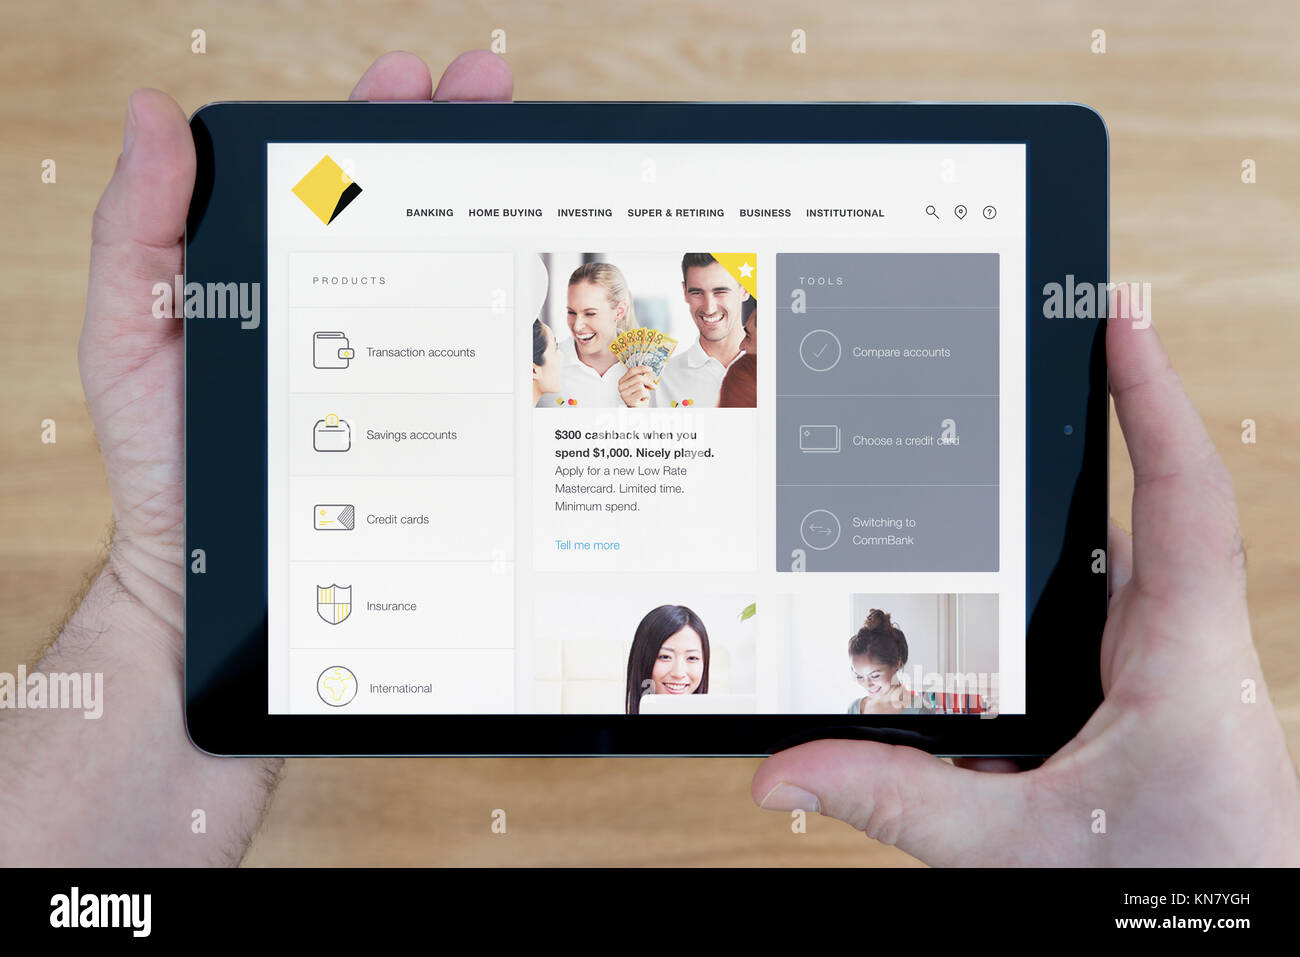 A man looks at the Commonwealth Bank website on his iPad tablet device, shot against a wooden table top background - Stock Image